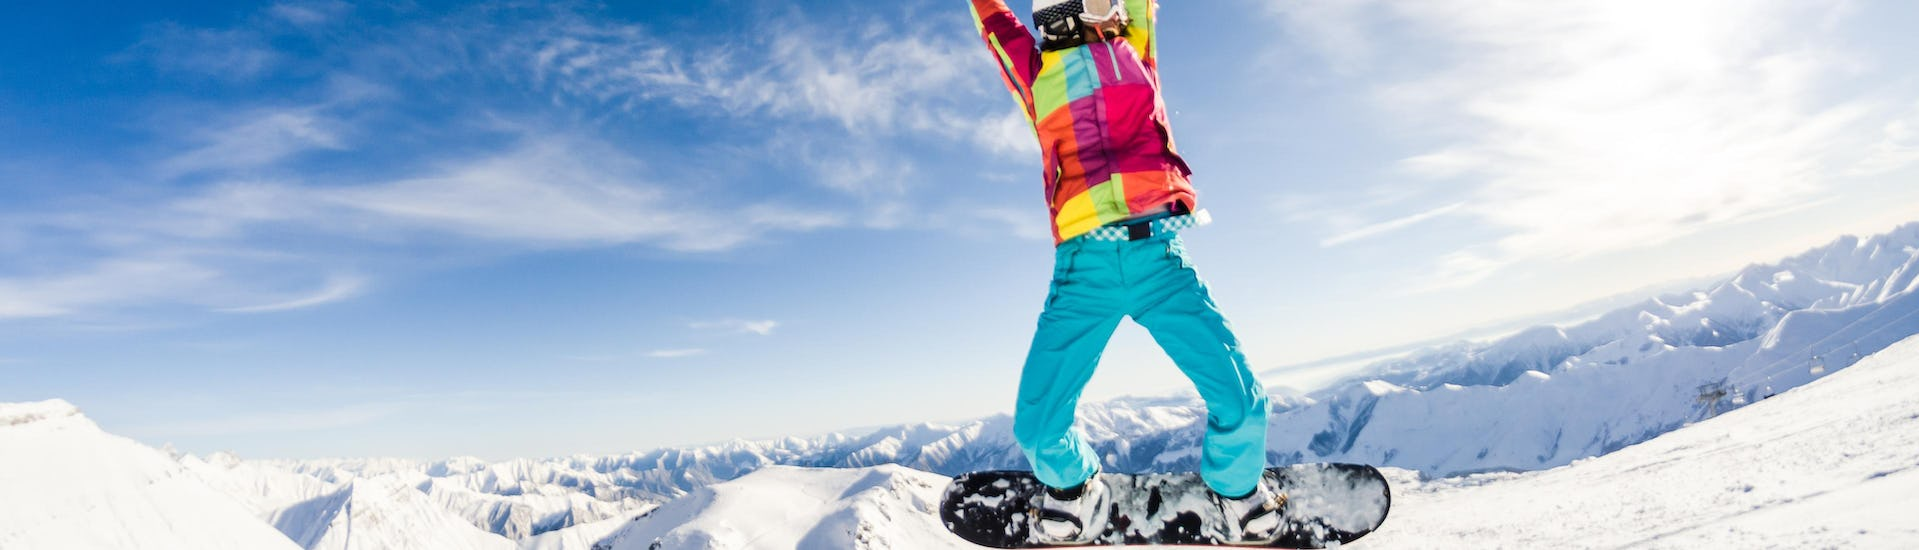 Snowboard Lessons for Kids (from 10y.) & Adults - All Levels